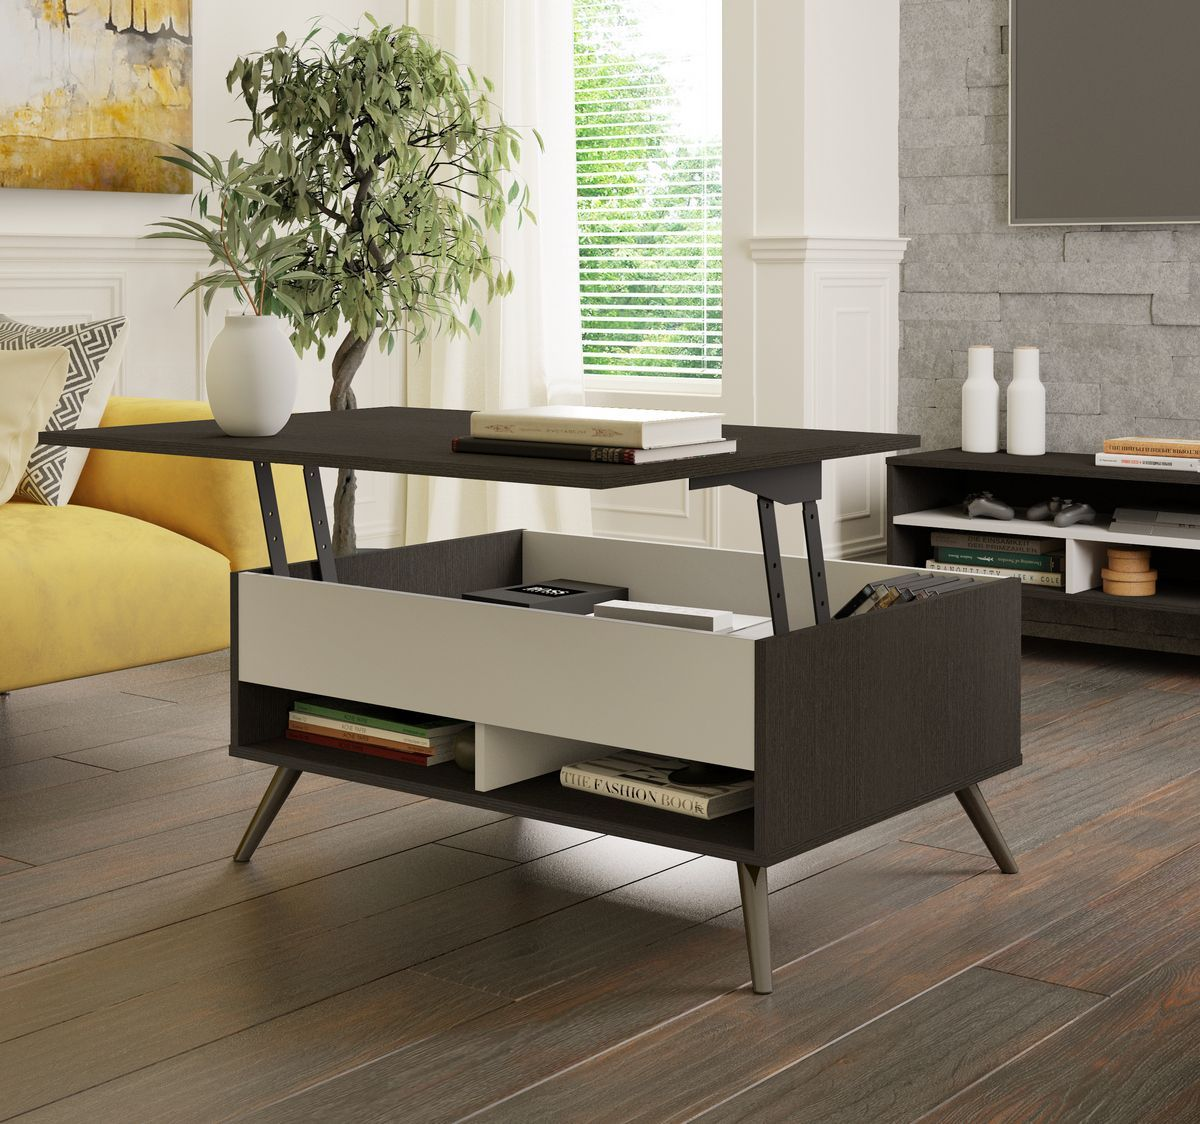 13+ White and grey coffee table with storage trends